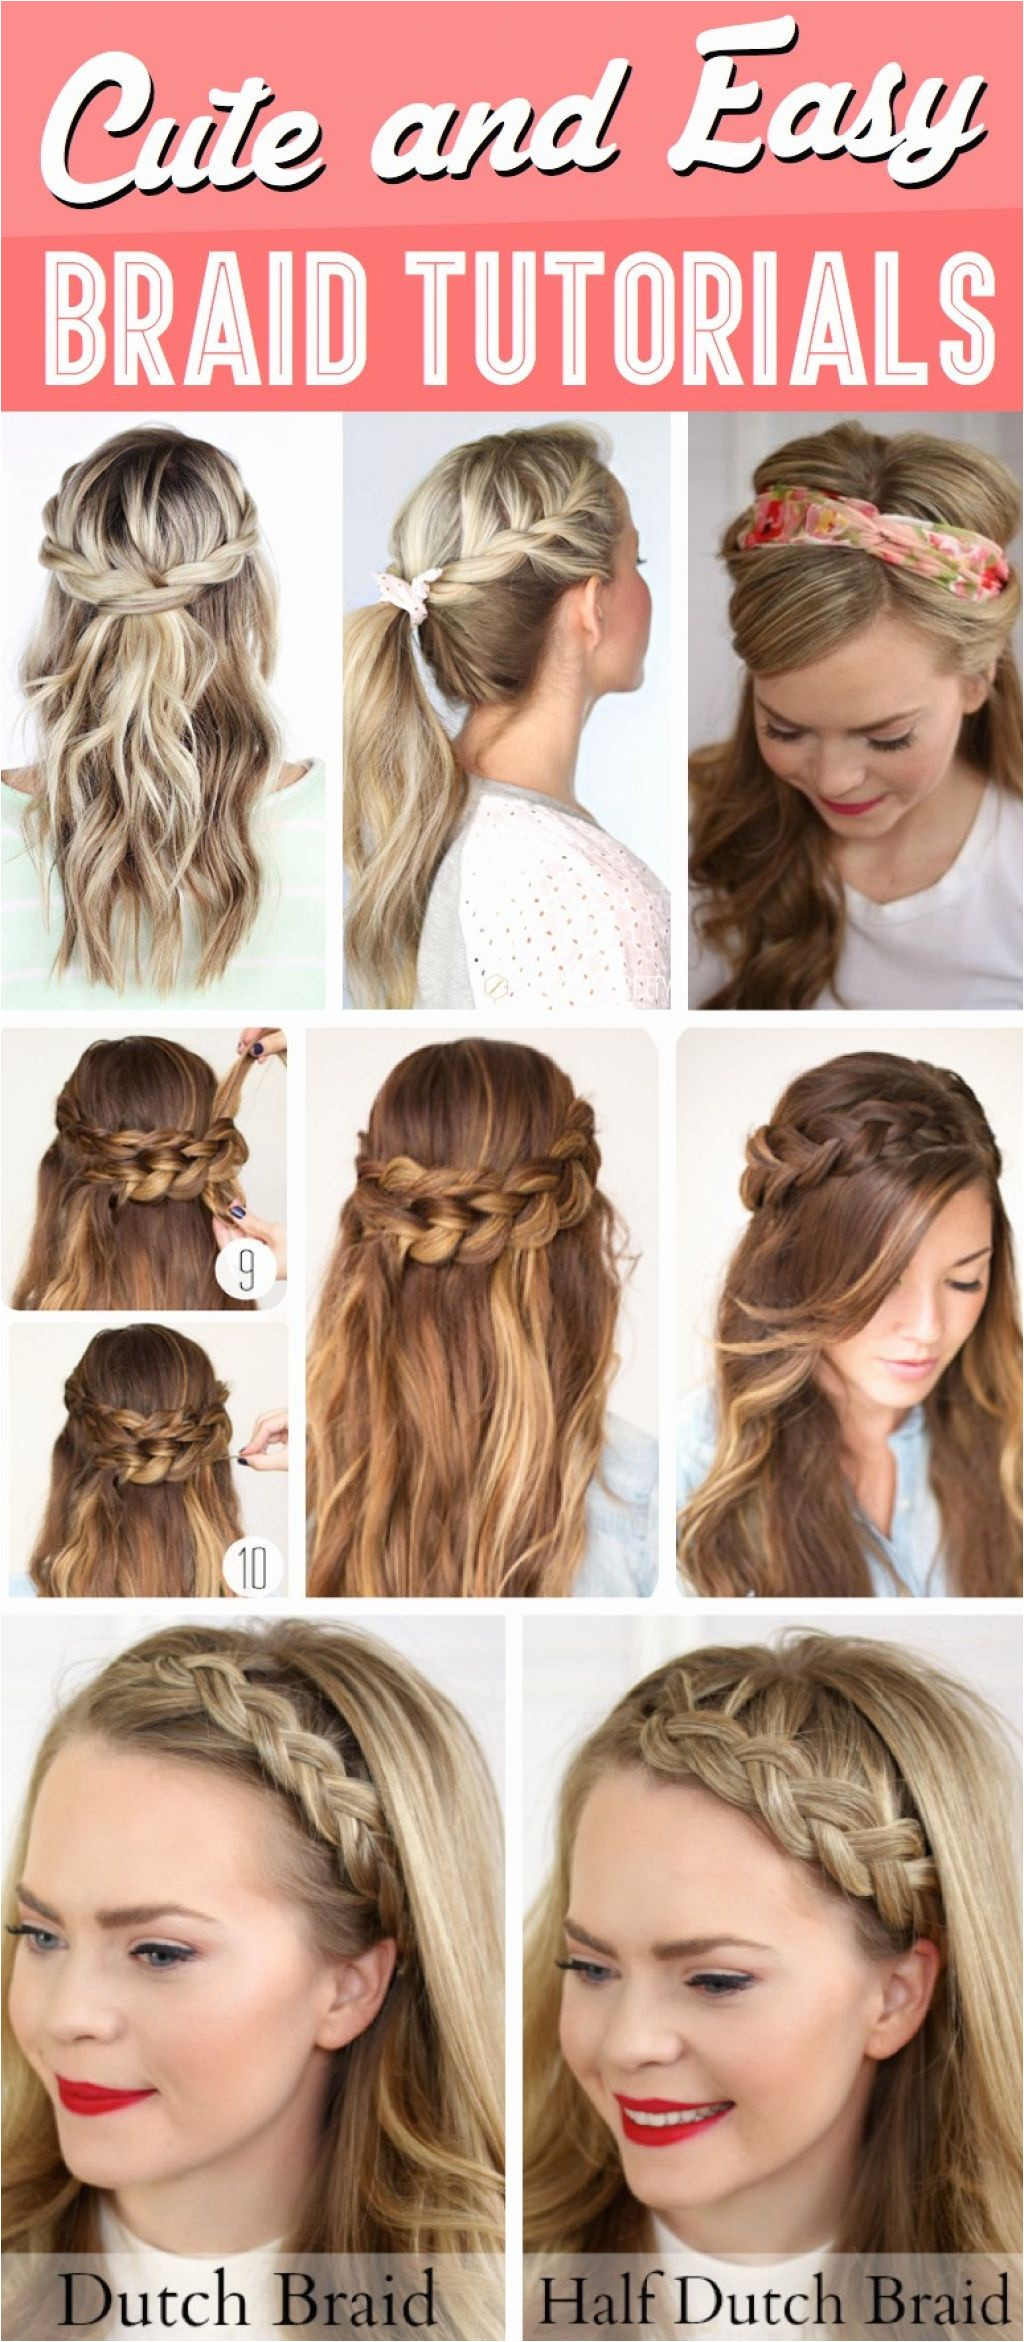 Simple Braided Hairstyles Best S Cute Easy Hairstyles for School – Hair Ideas Cut and